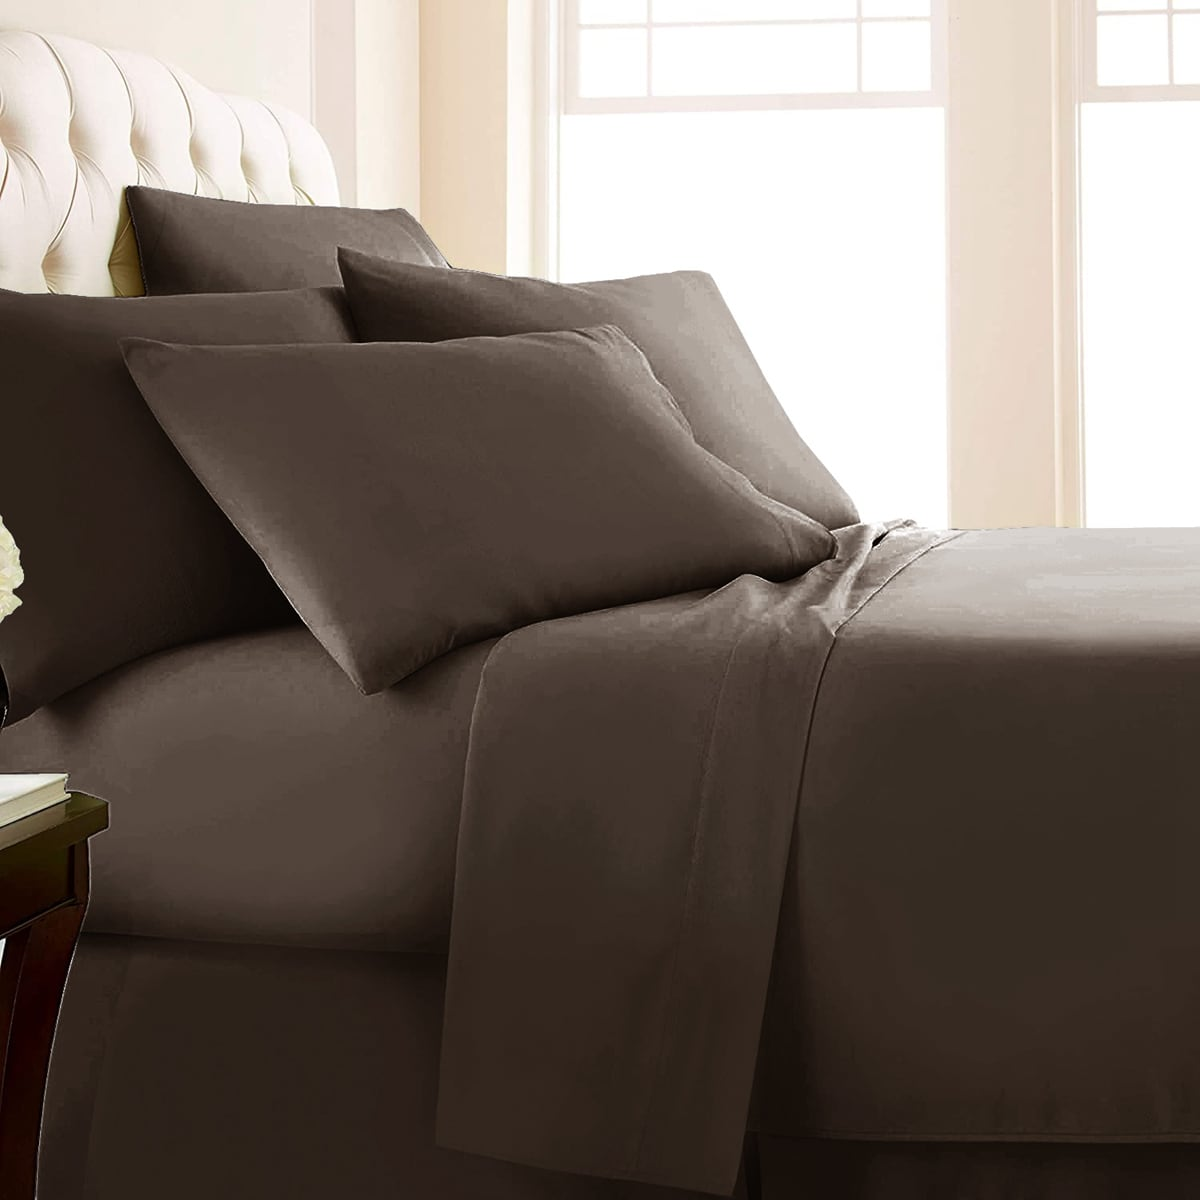 Solid Color Sheet & Pillowcase Set Without Filler